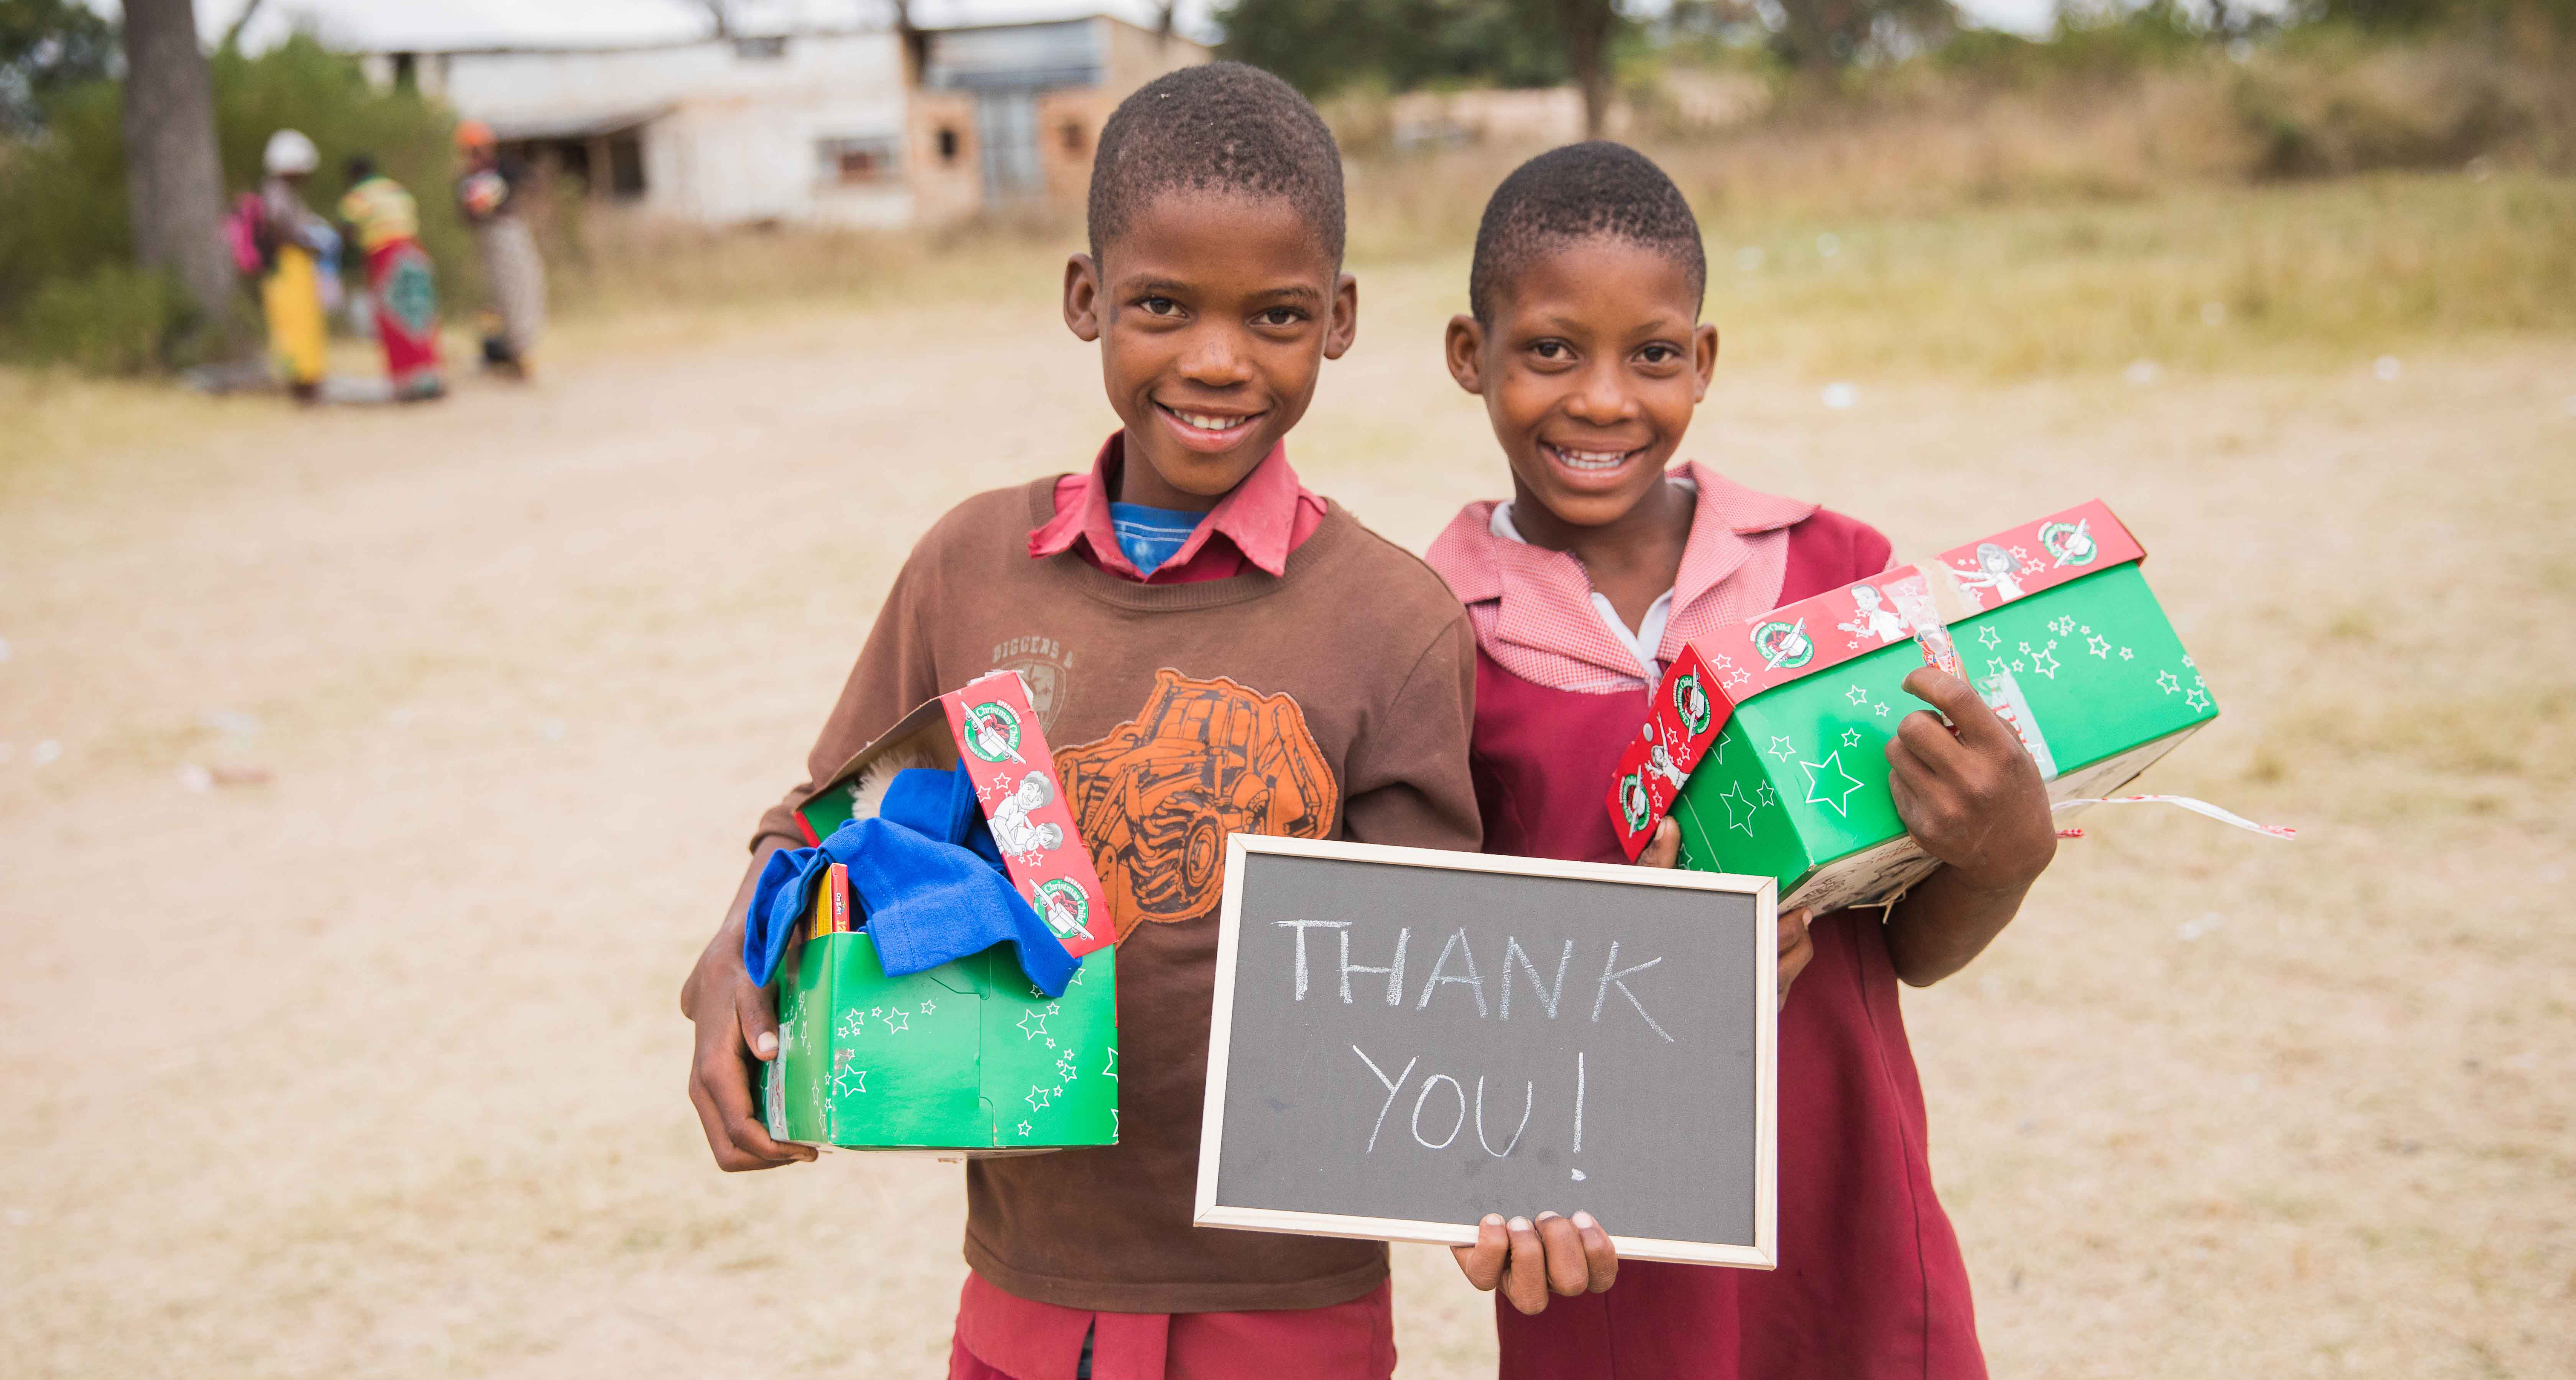 Children holding shoeboxes and blackboard with thank you